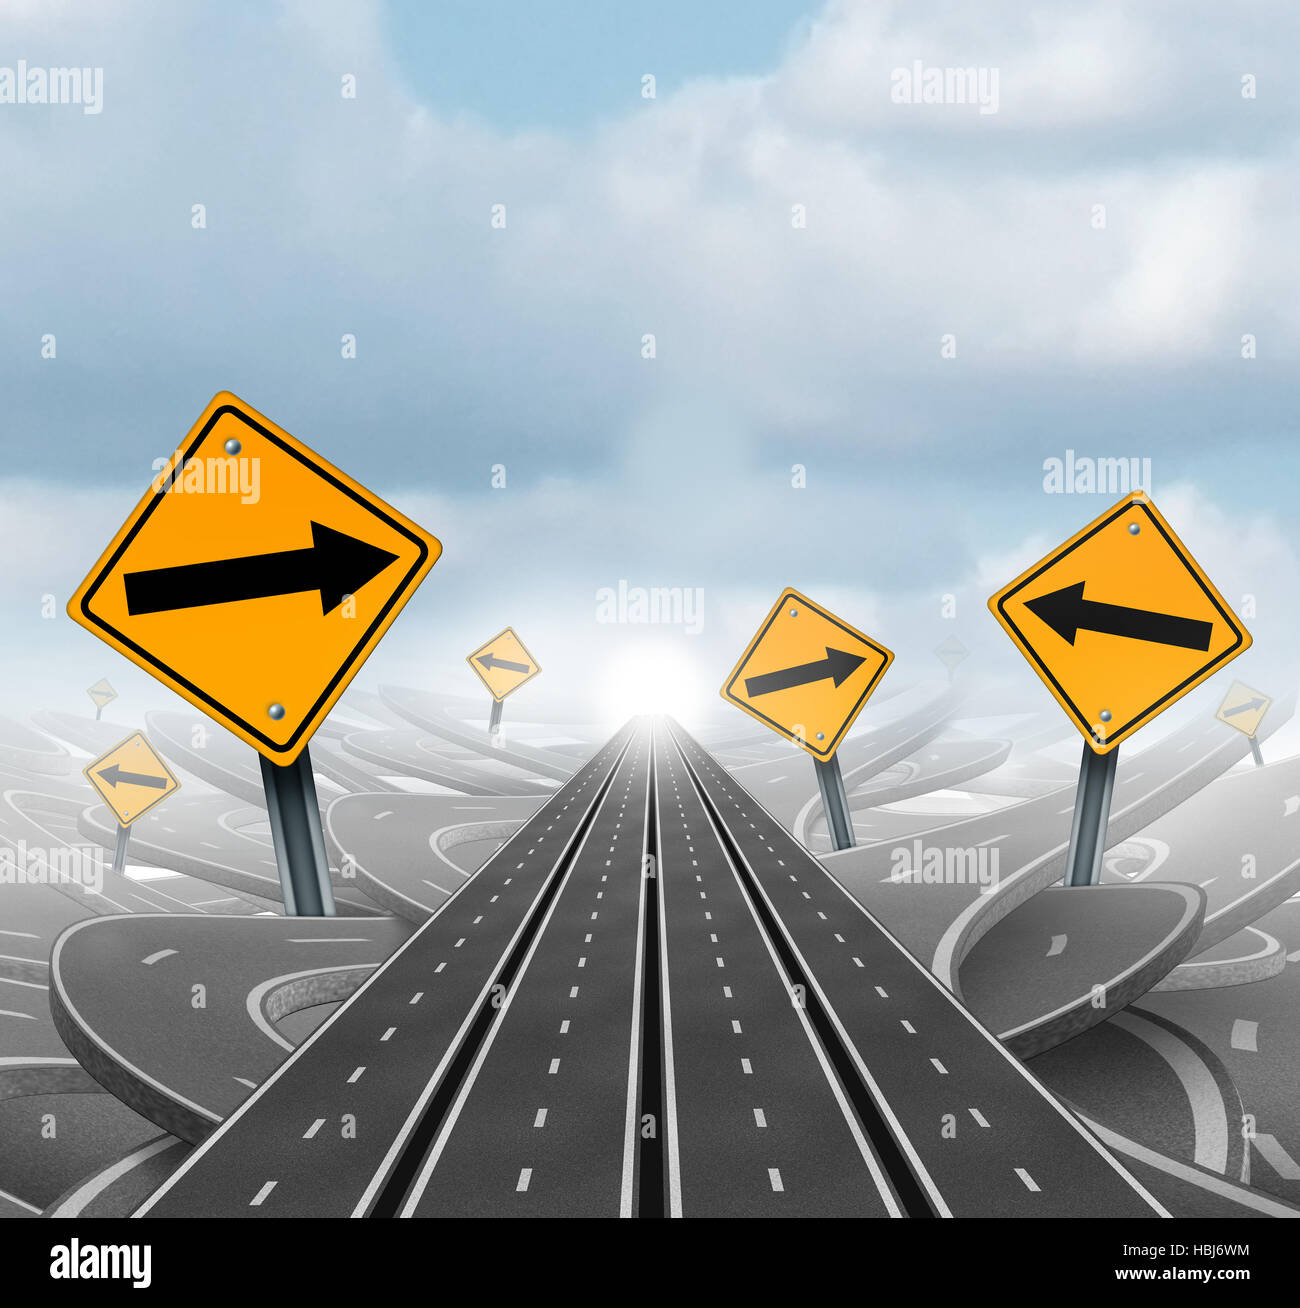 Many roads to success and clear group strategy and solutions for business leadership with straight multiple paths - Stock Image